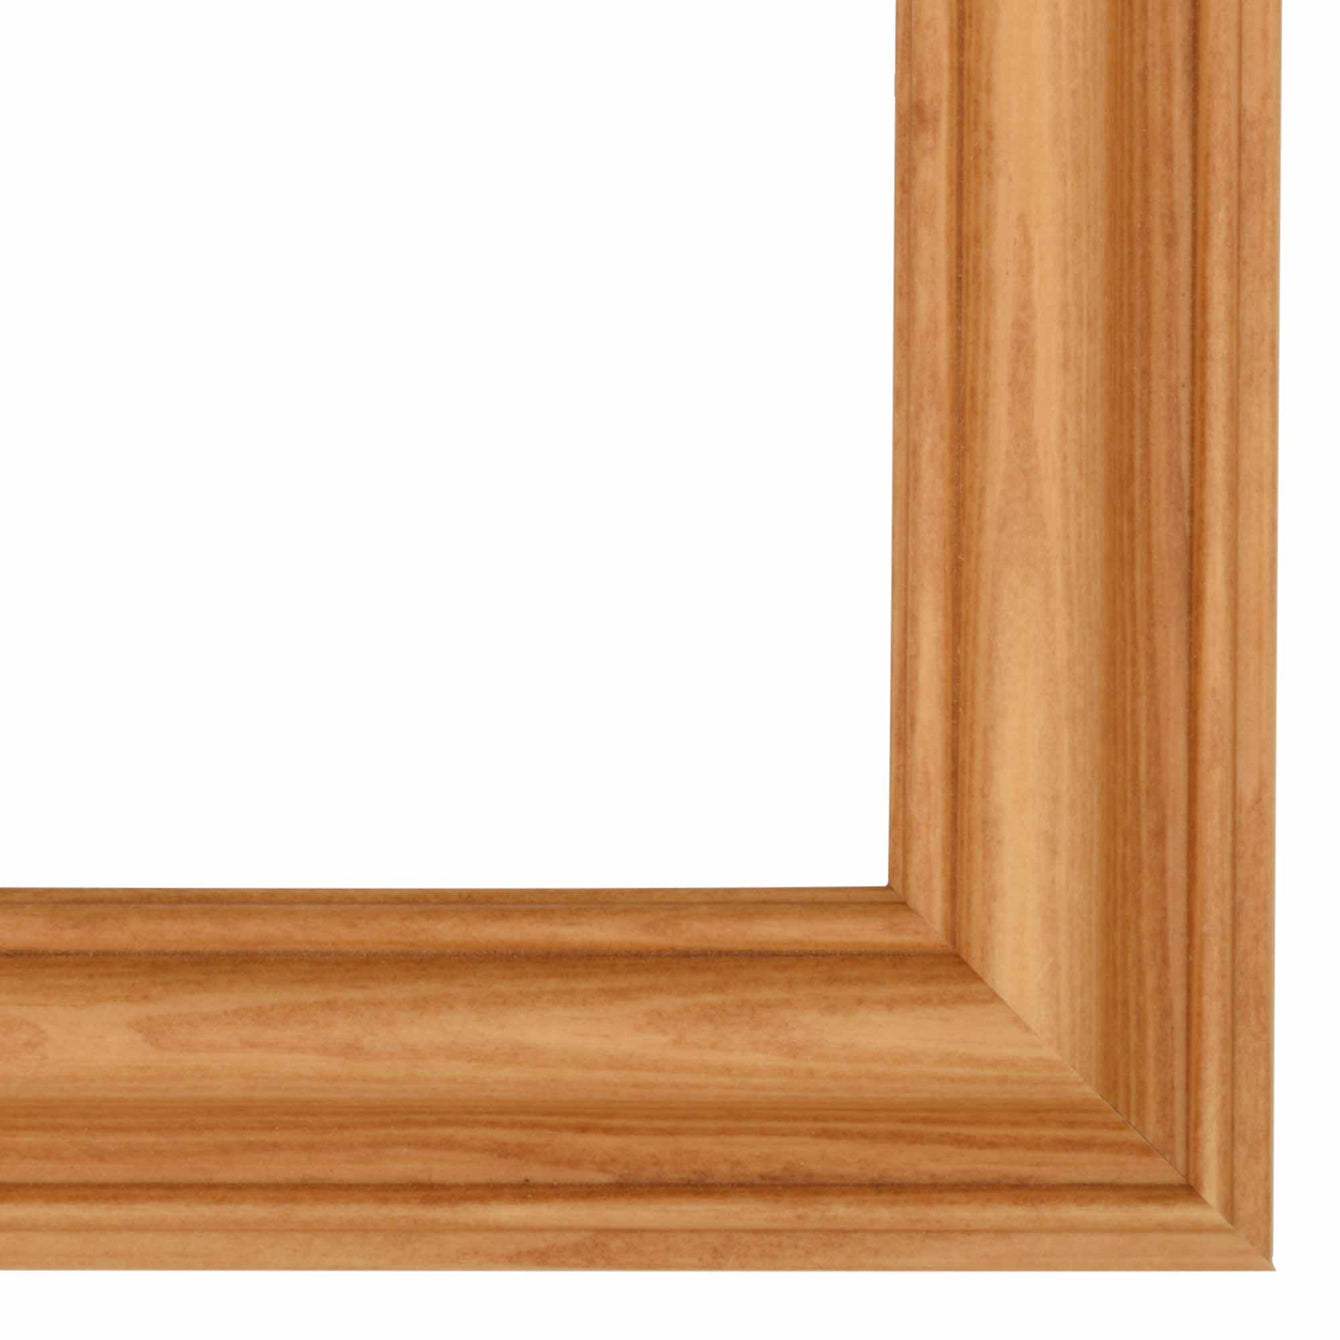 ElekTek Switch Surround Ovolo Frame Cover Finger Plate Pine Shades Washed Blue Pine